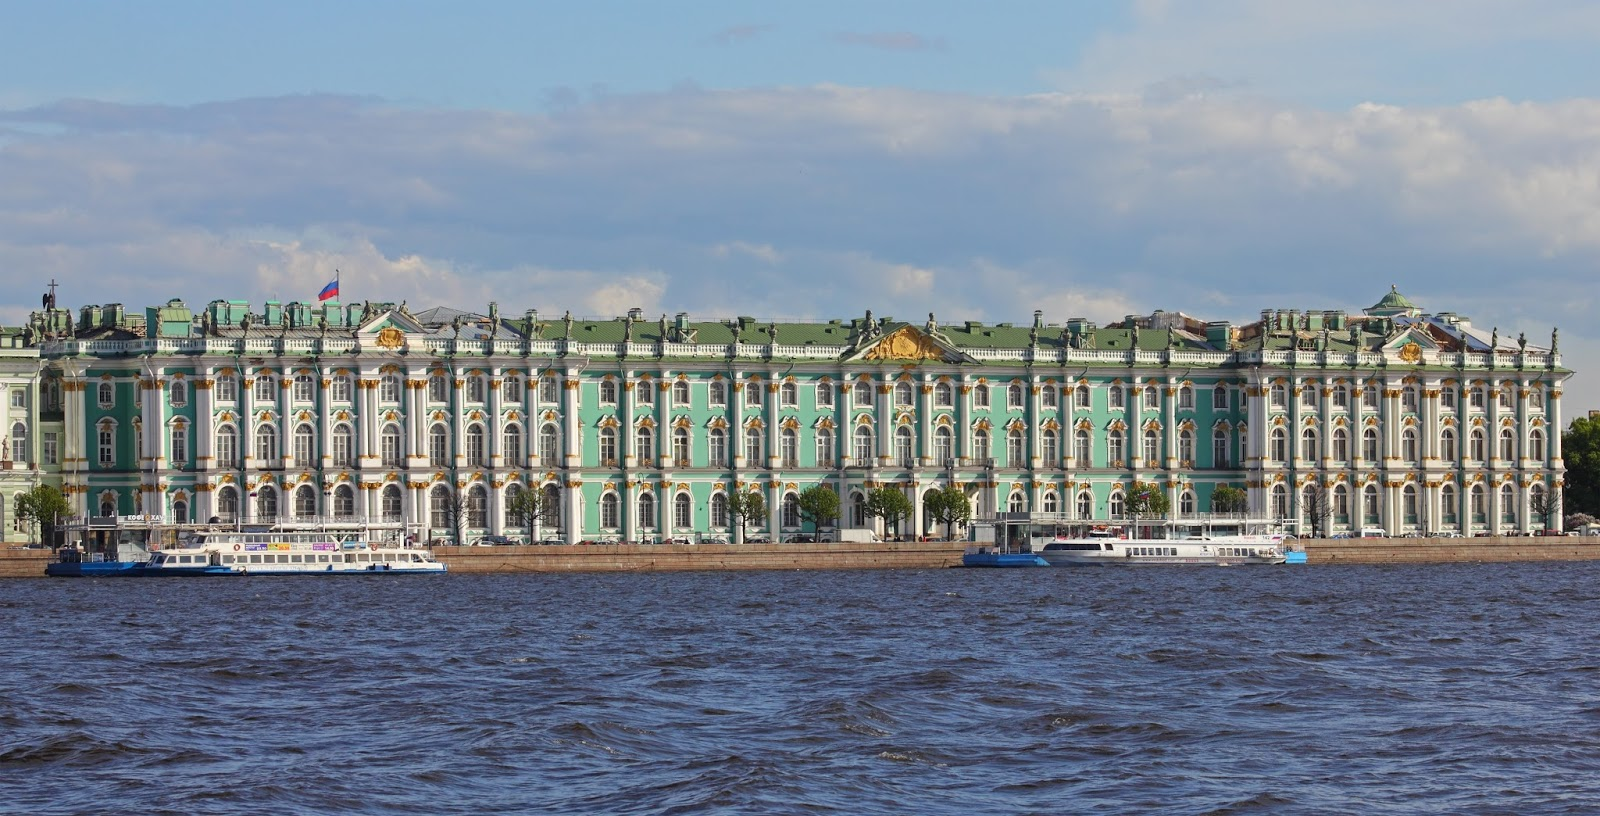 These Are The 25 Best Museums In The World - Hermitage Museum